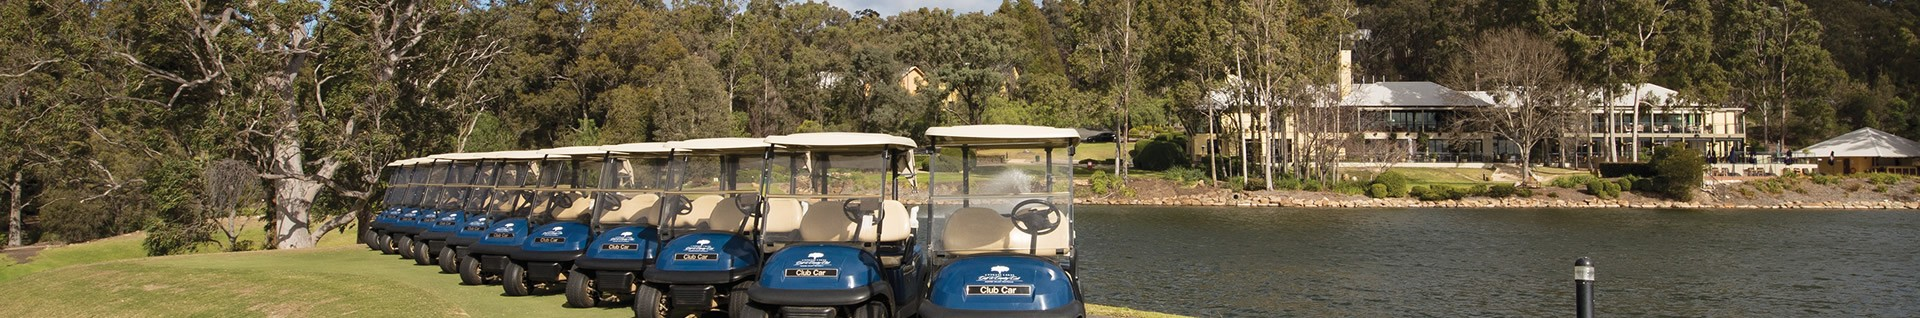 resort-buggies-1